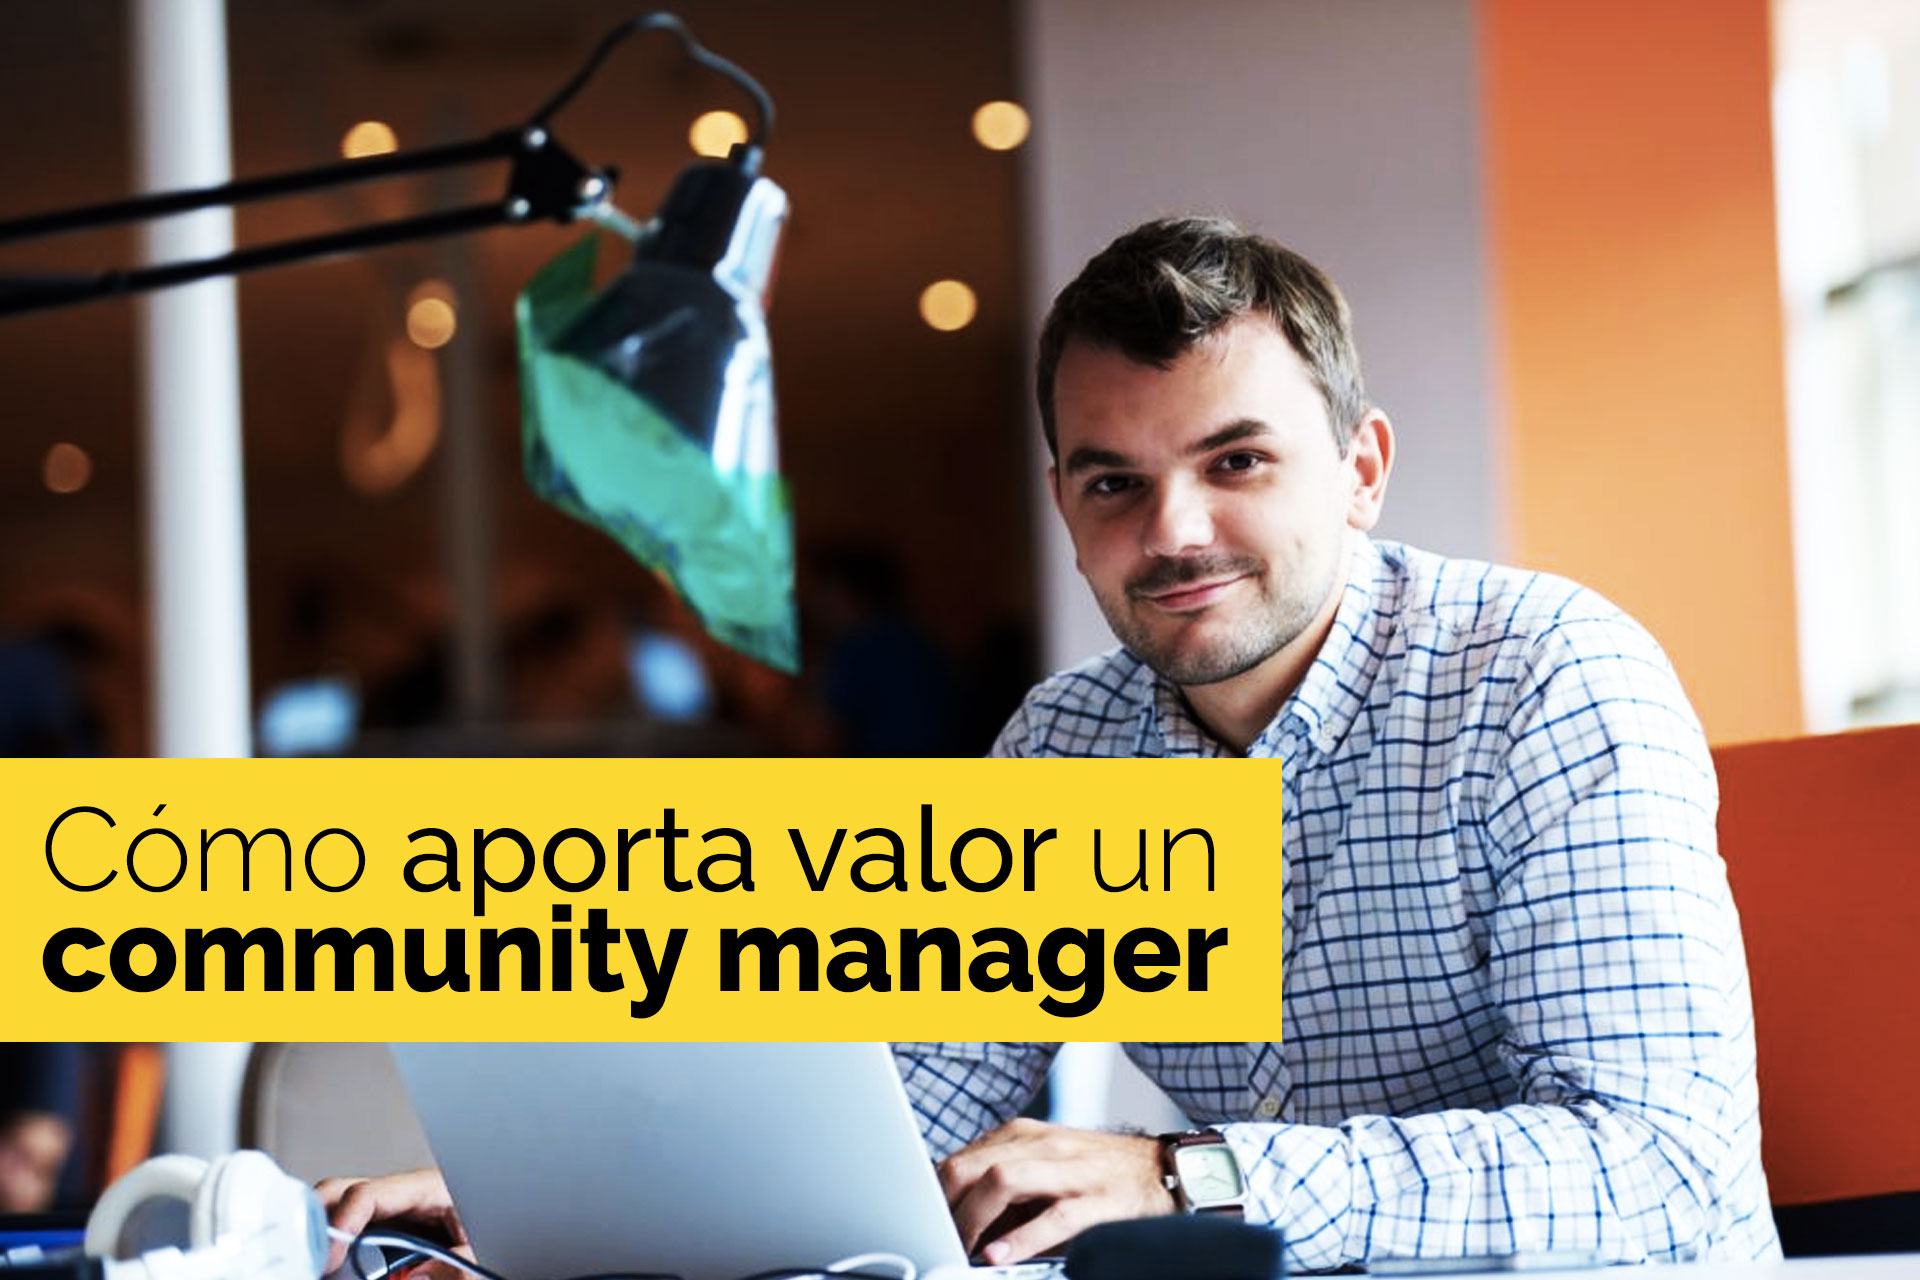 Social Media: Cómo aporta valor un Community Manager